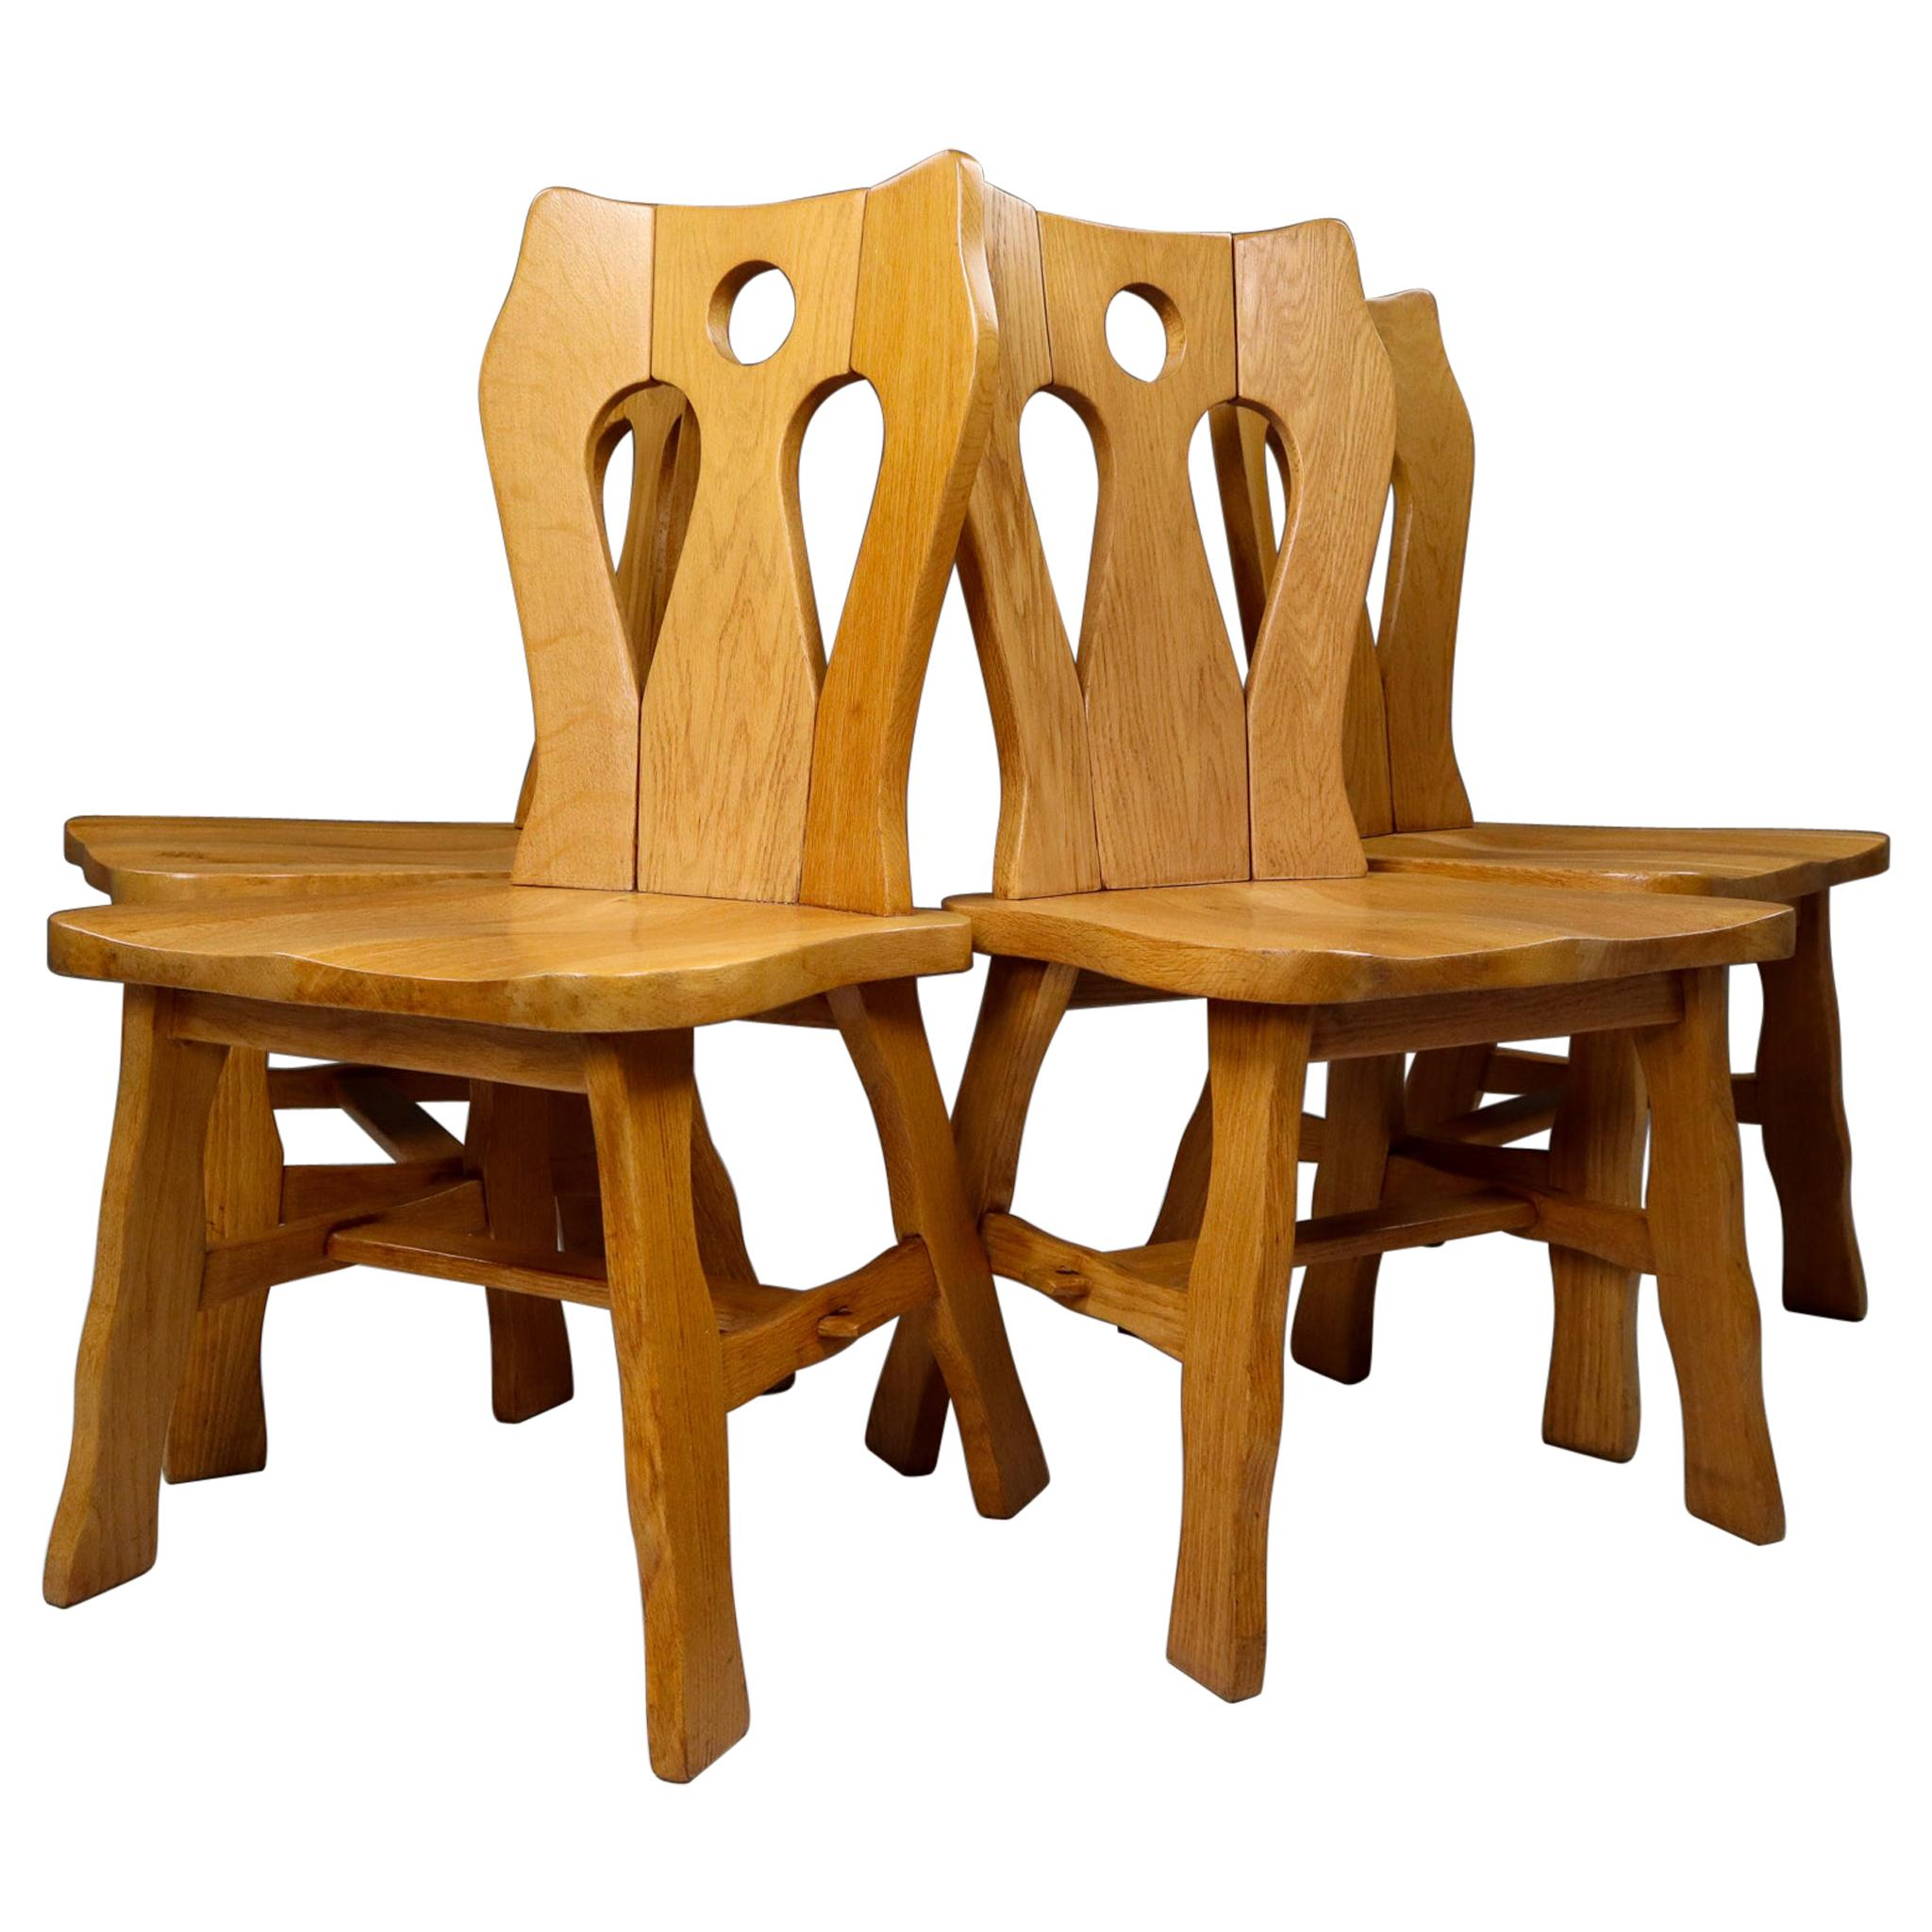 Set of Four Brutalist Chairs in Blond Oak, Belgium, 1960s